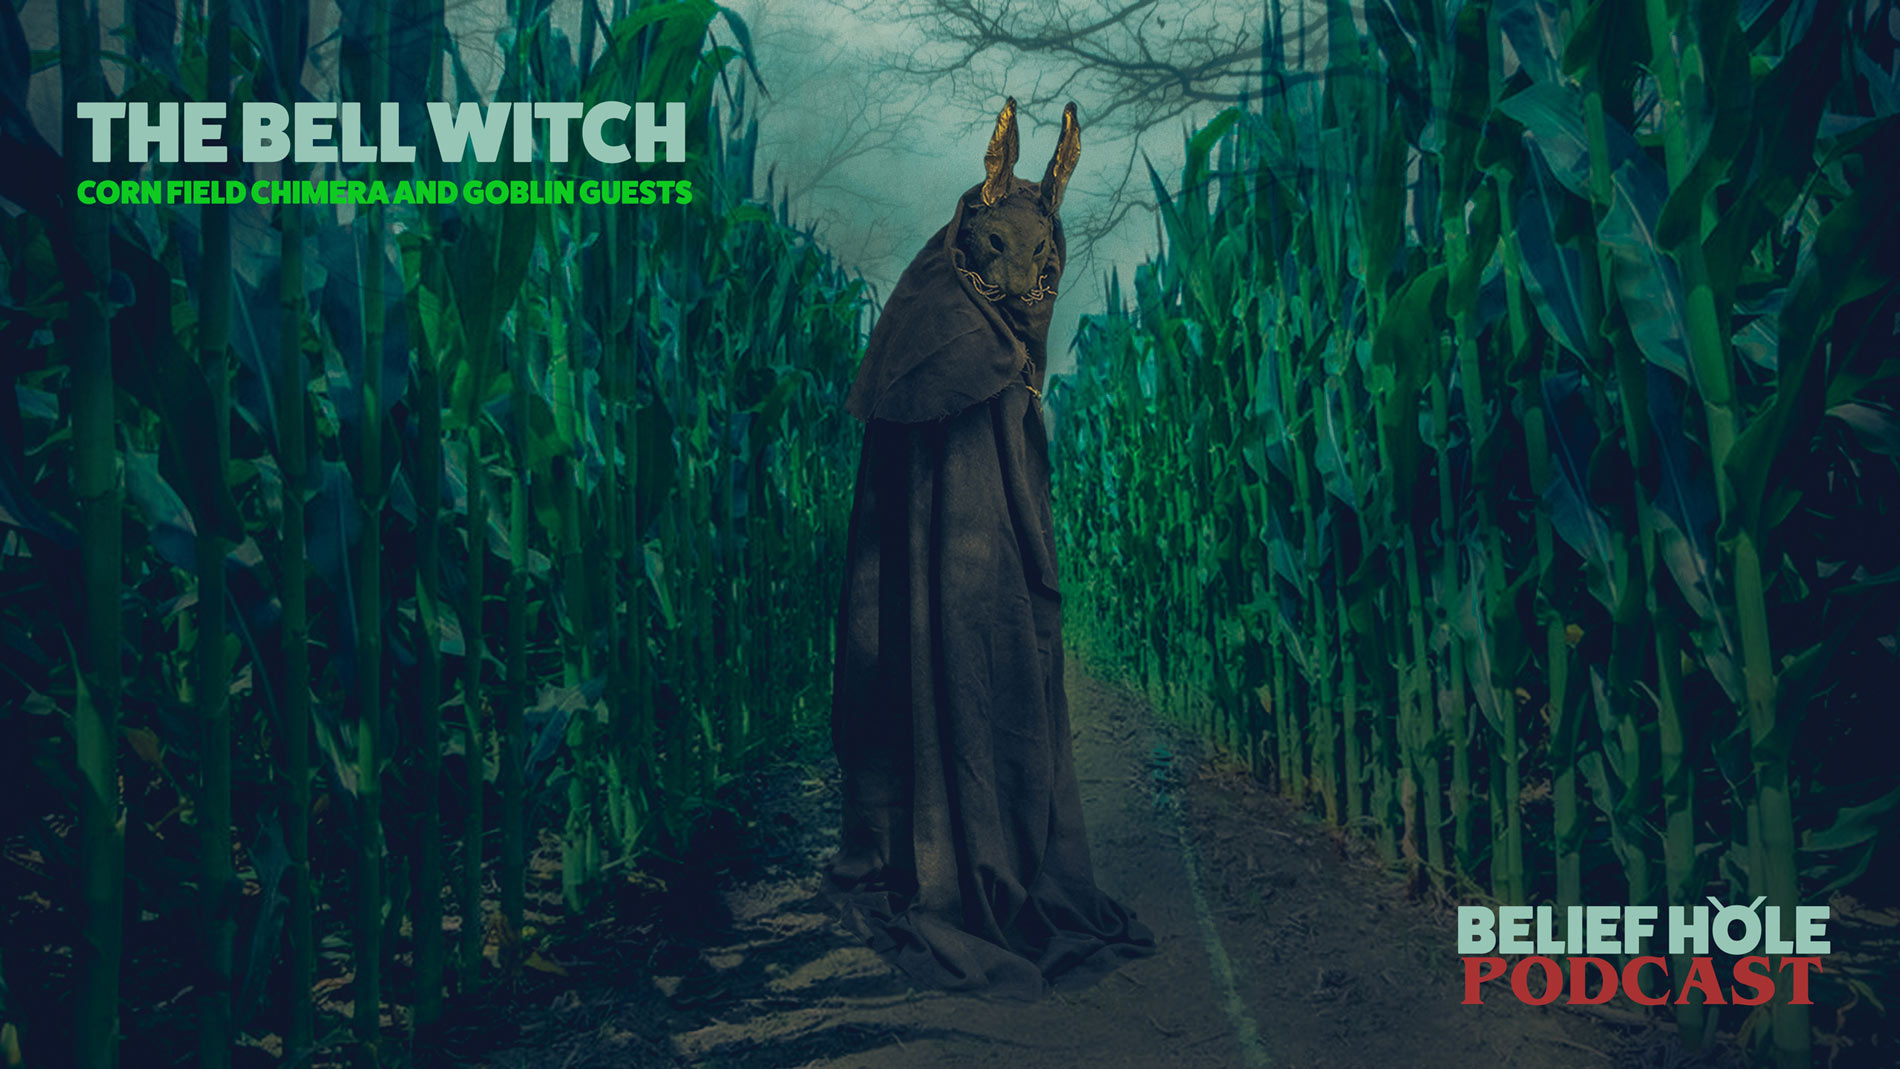 The Bell Witch, Cornfield Chimera, and Goblin Guests